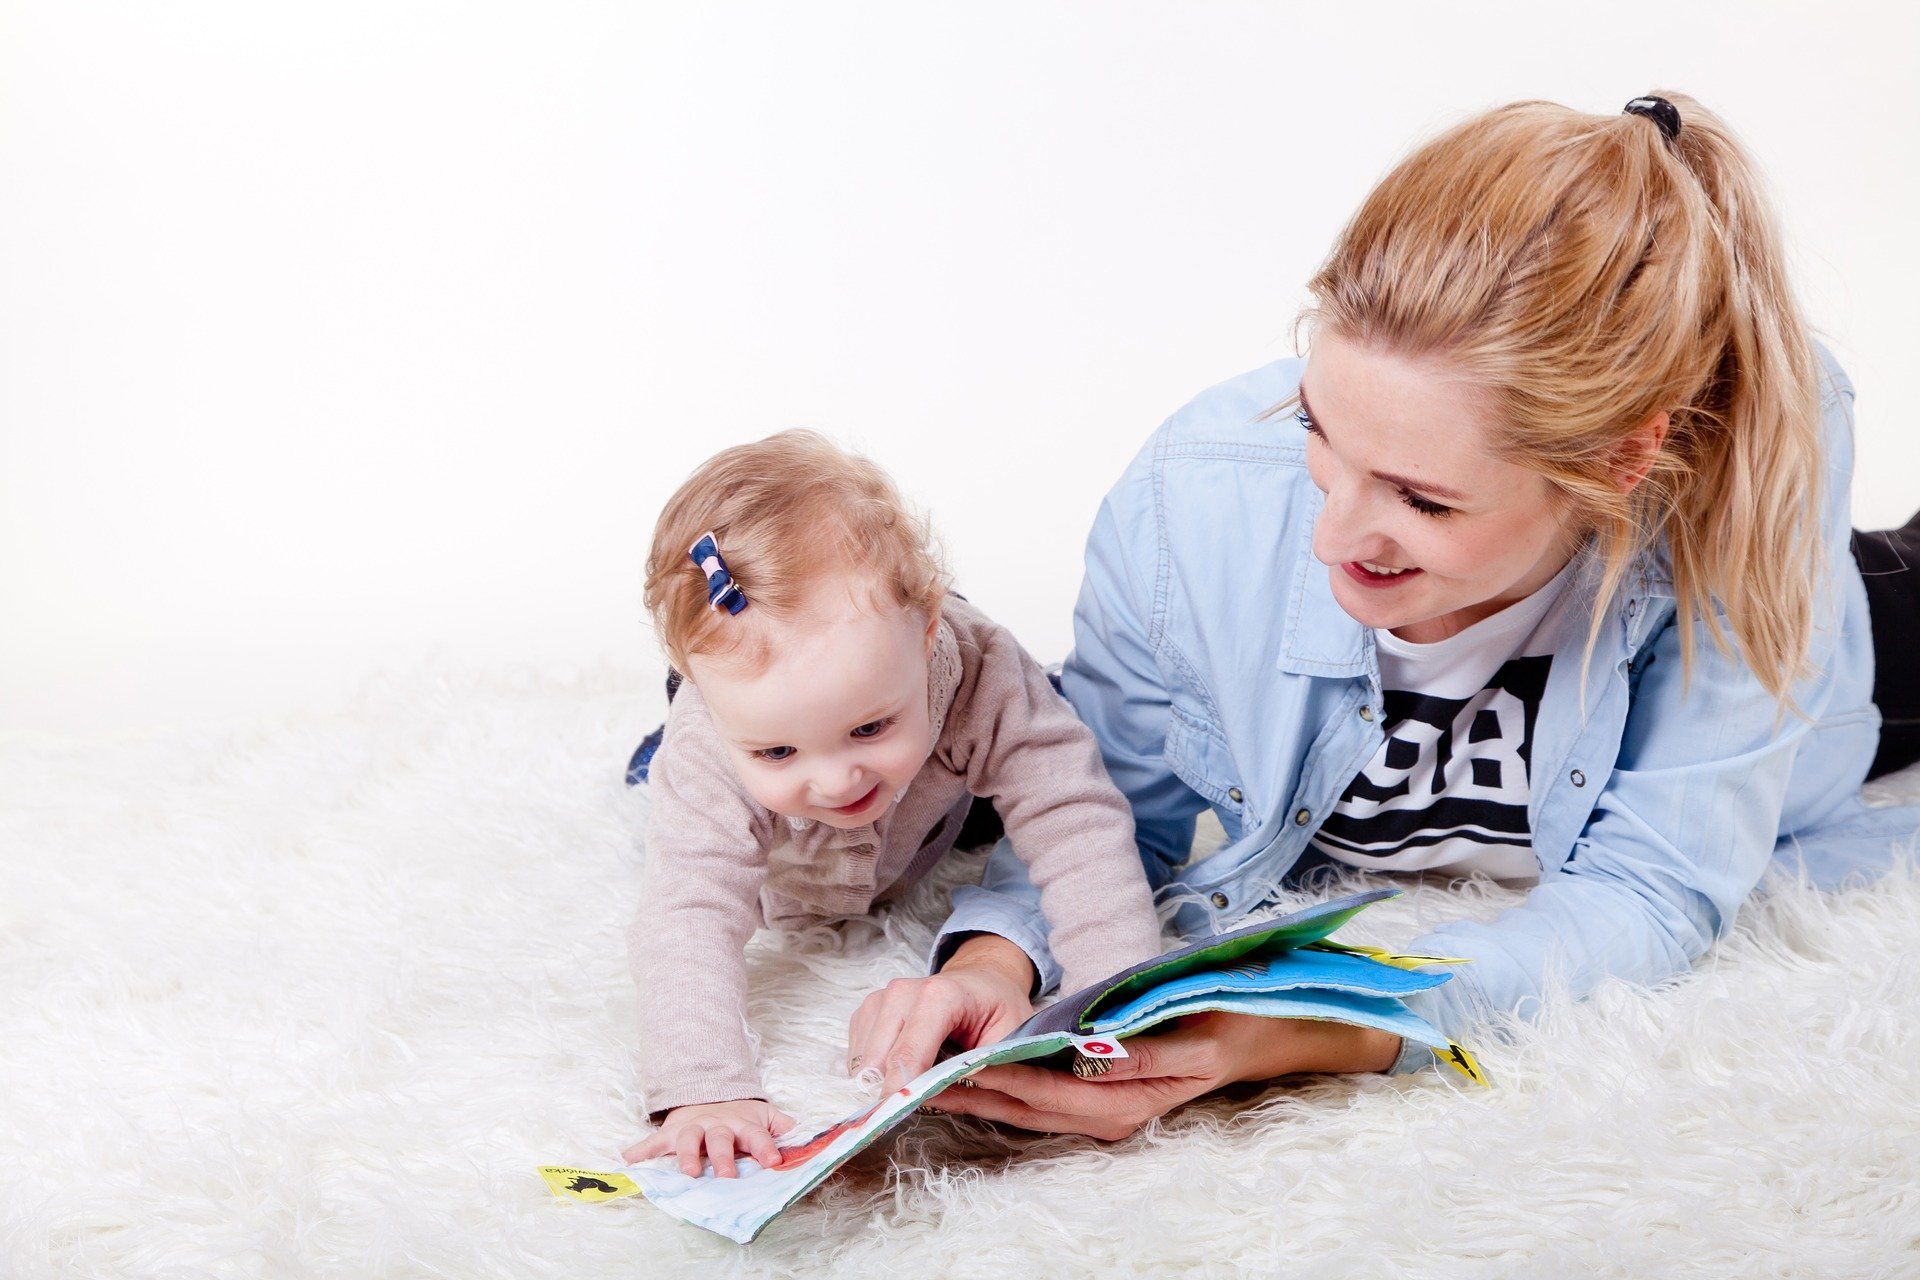 Play ideas for children, during which mother can rest.